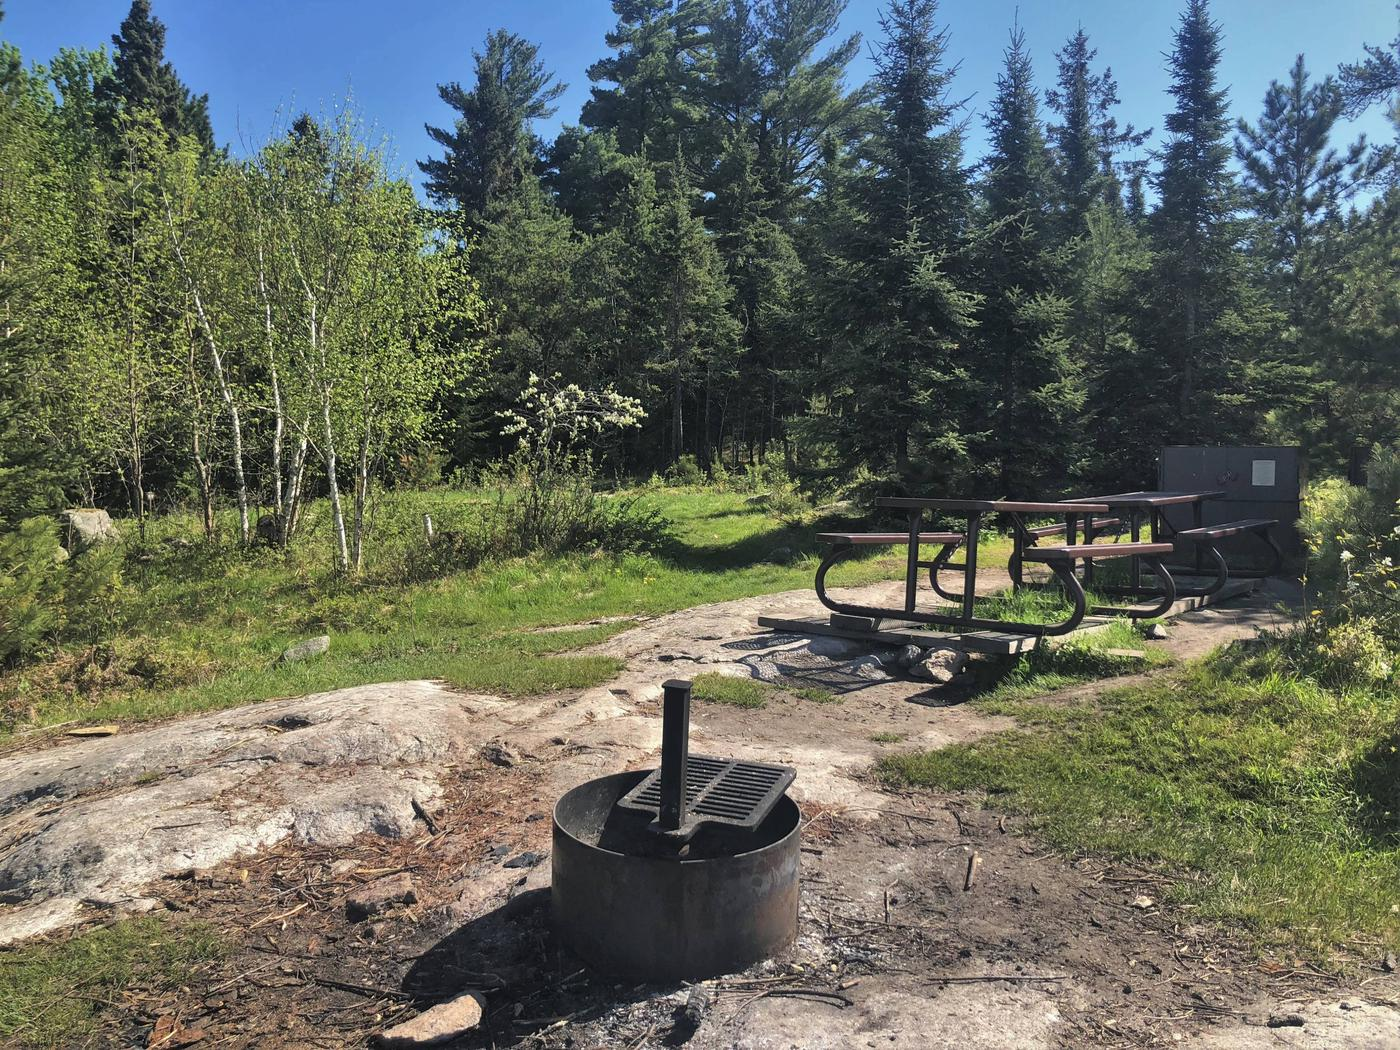 K55 - Marrs PointView of campsite